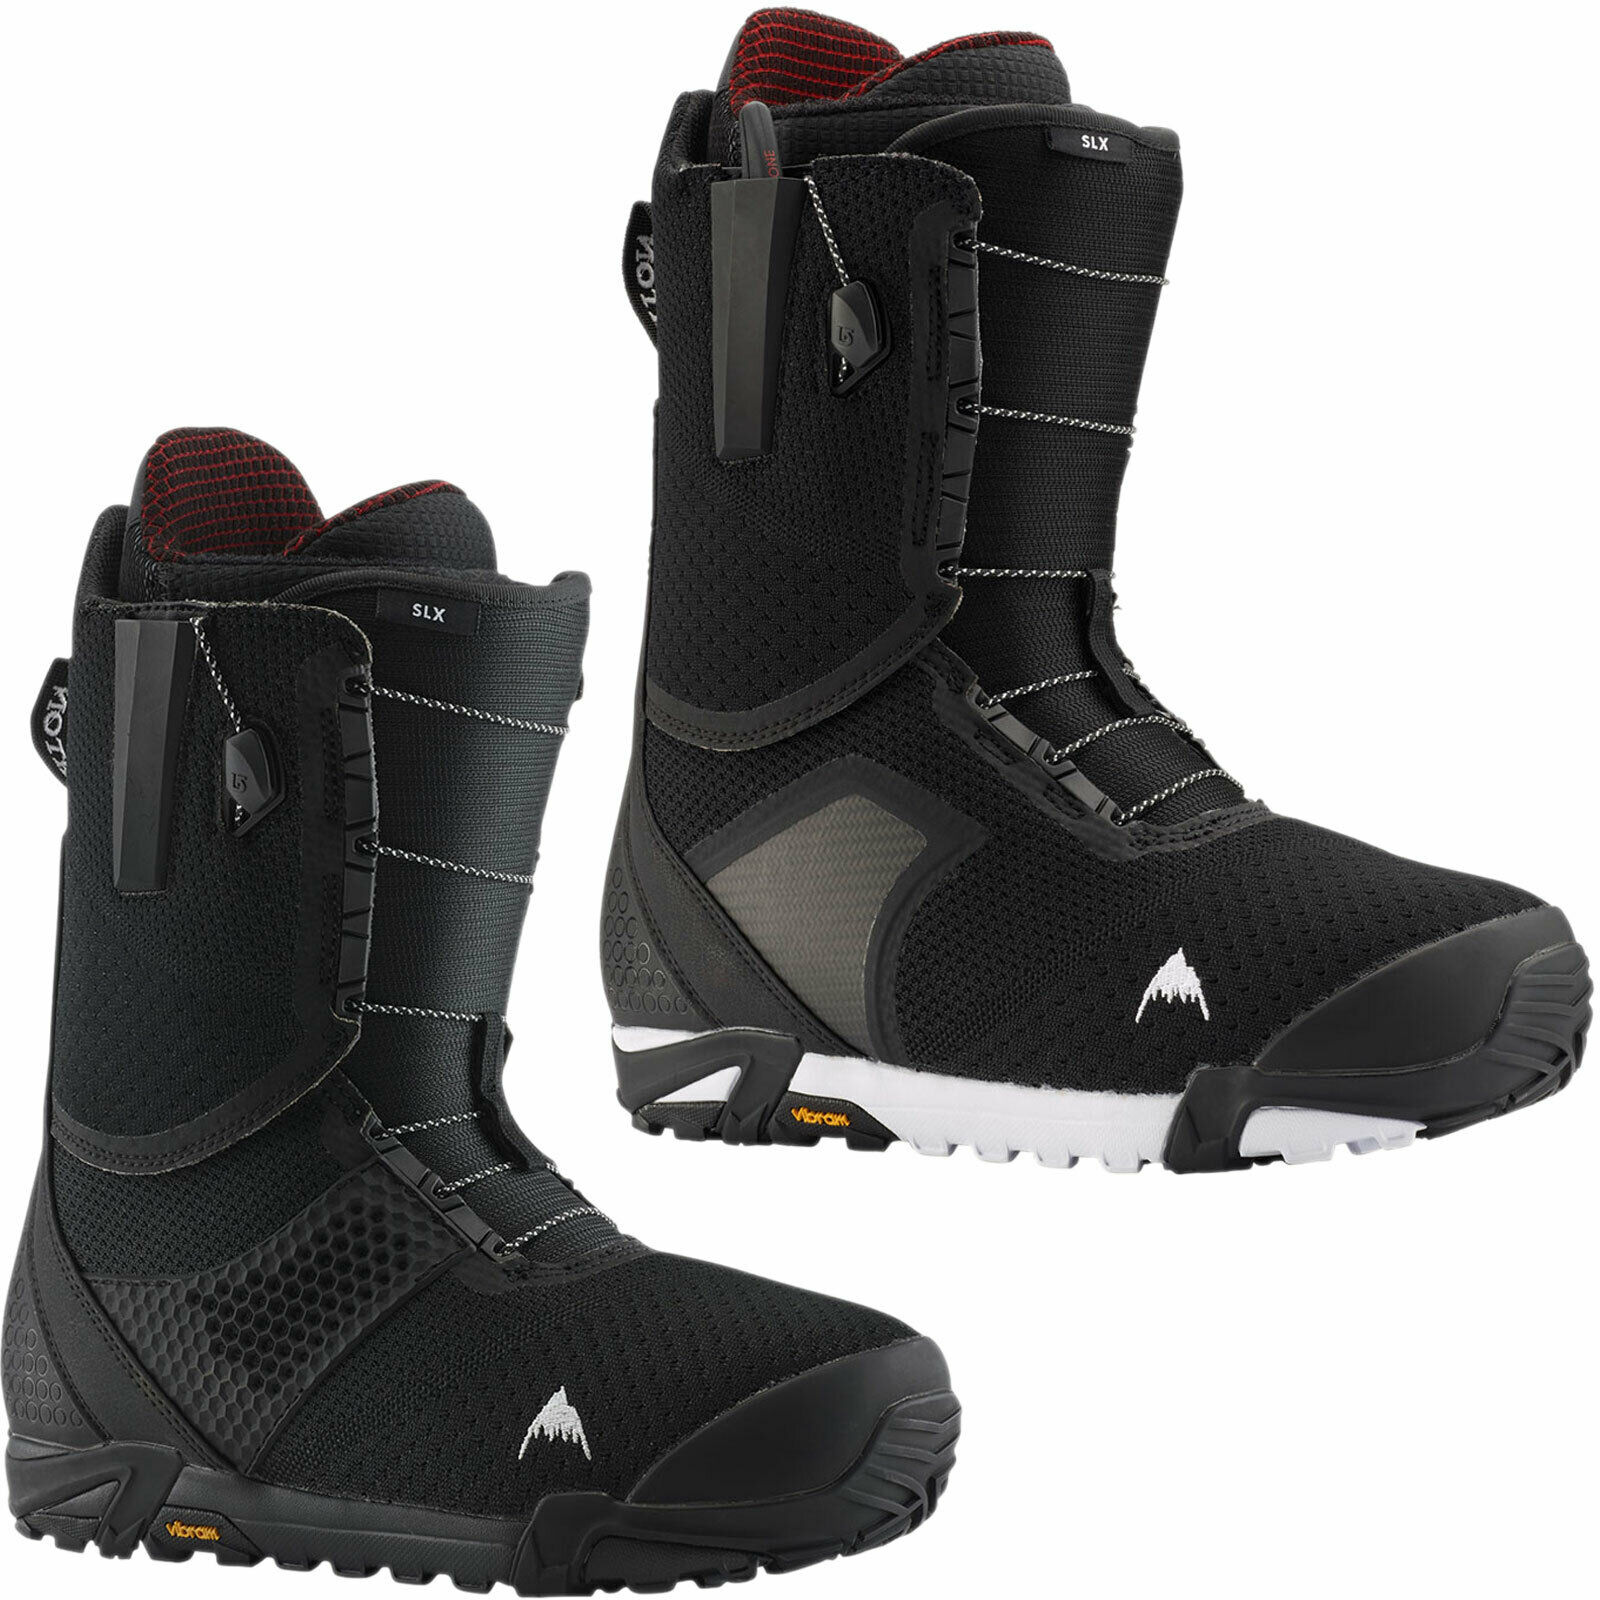 Burton SLX Men's Snowboard  shoes Snowboard Boots Snowboard Boots 2019-2020 NEW  cost-effective